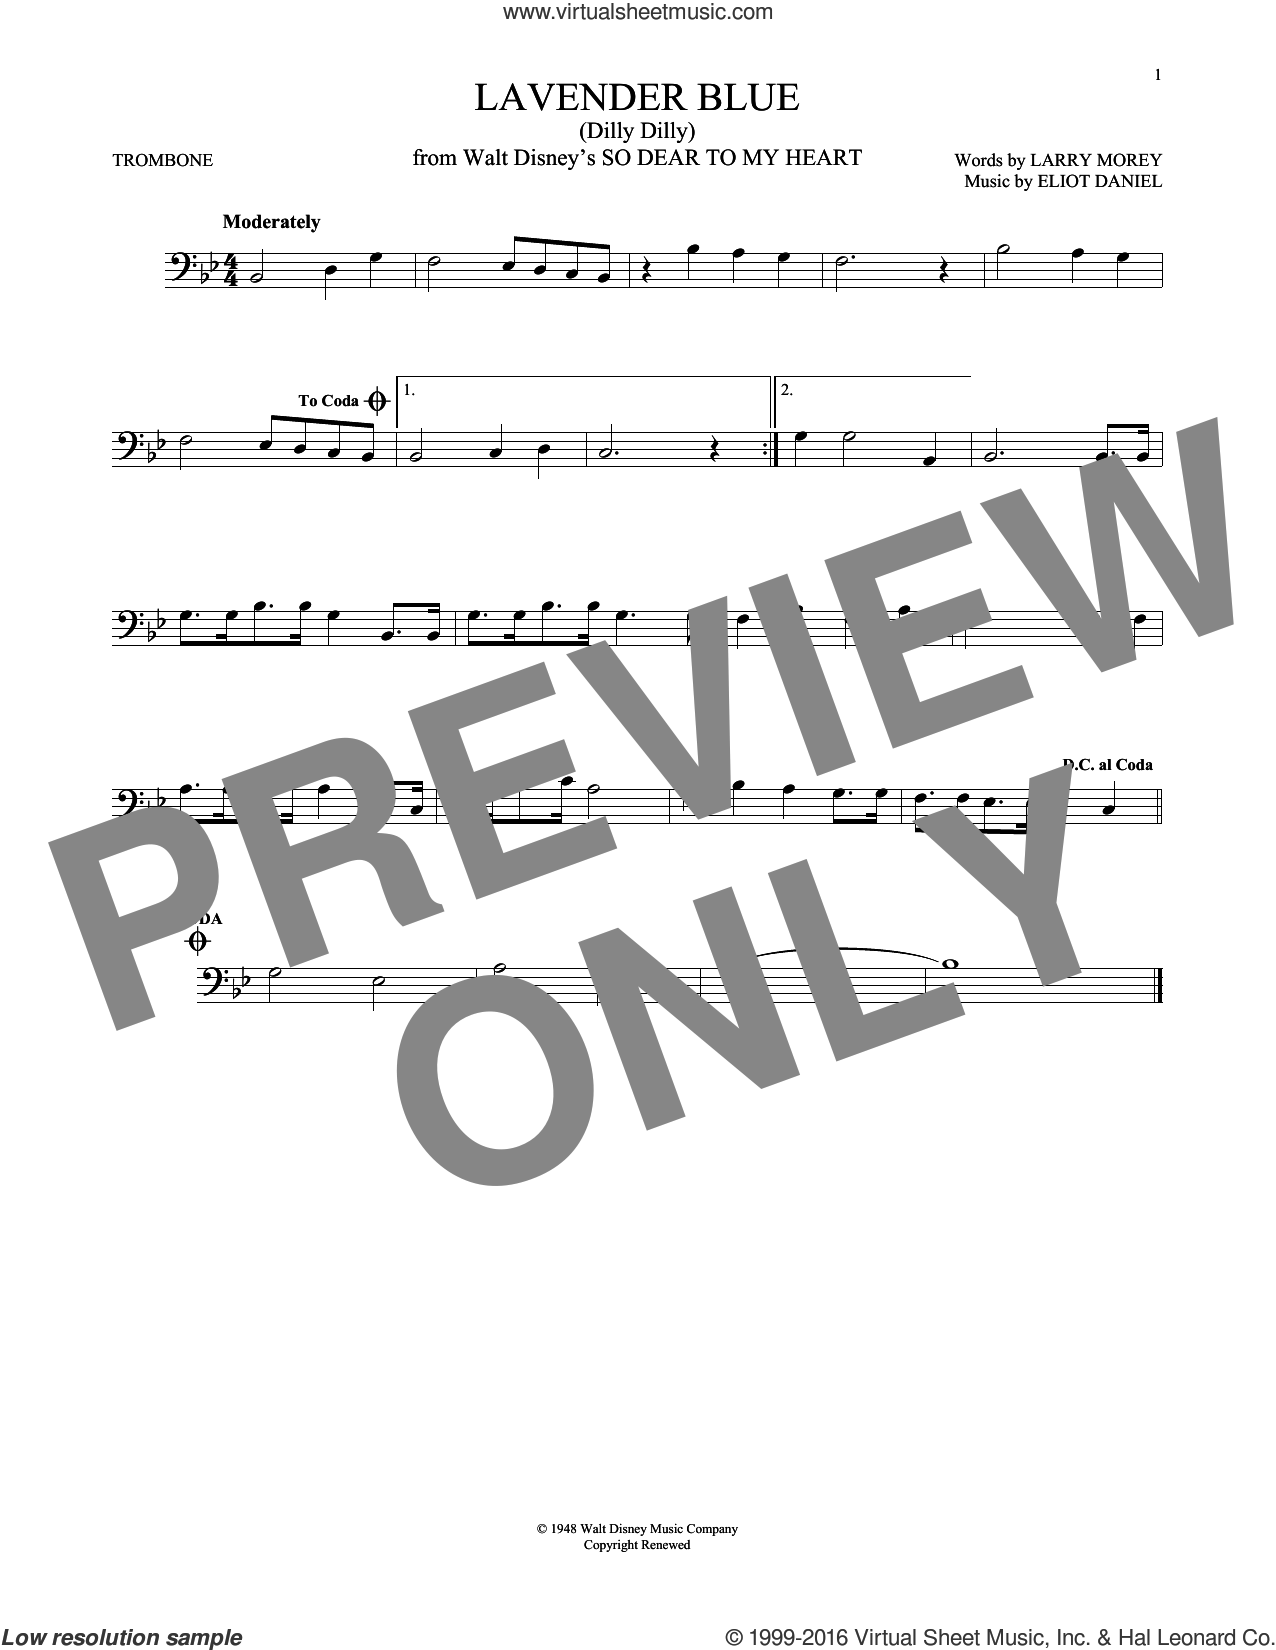 Lavender Blue (Dilly Dilly) sheet music for trombone solo by Sammy Turner, Eliot Daniel and Larry Morey. Score Image Preview.